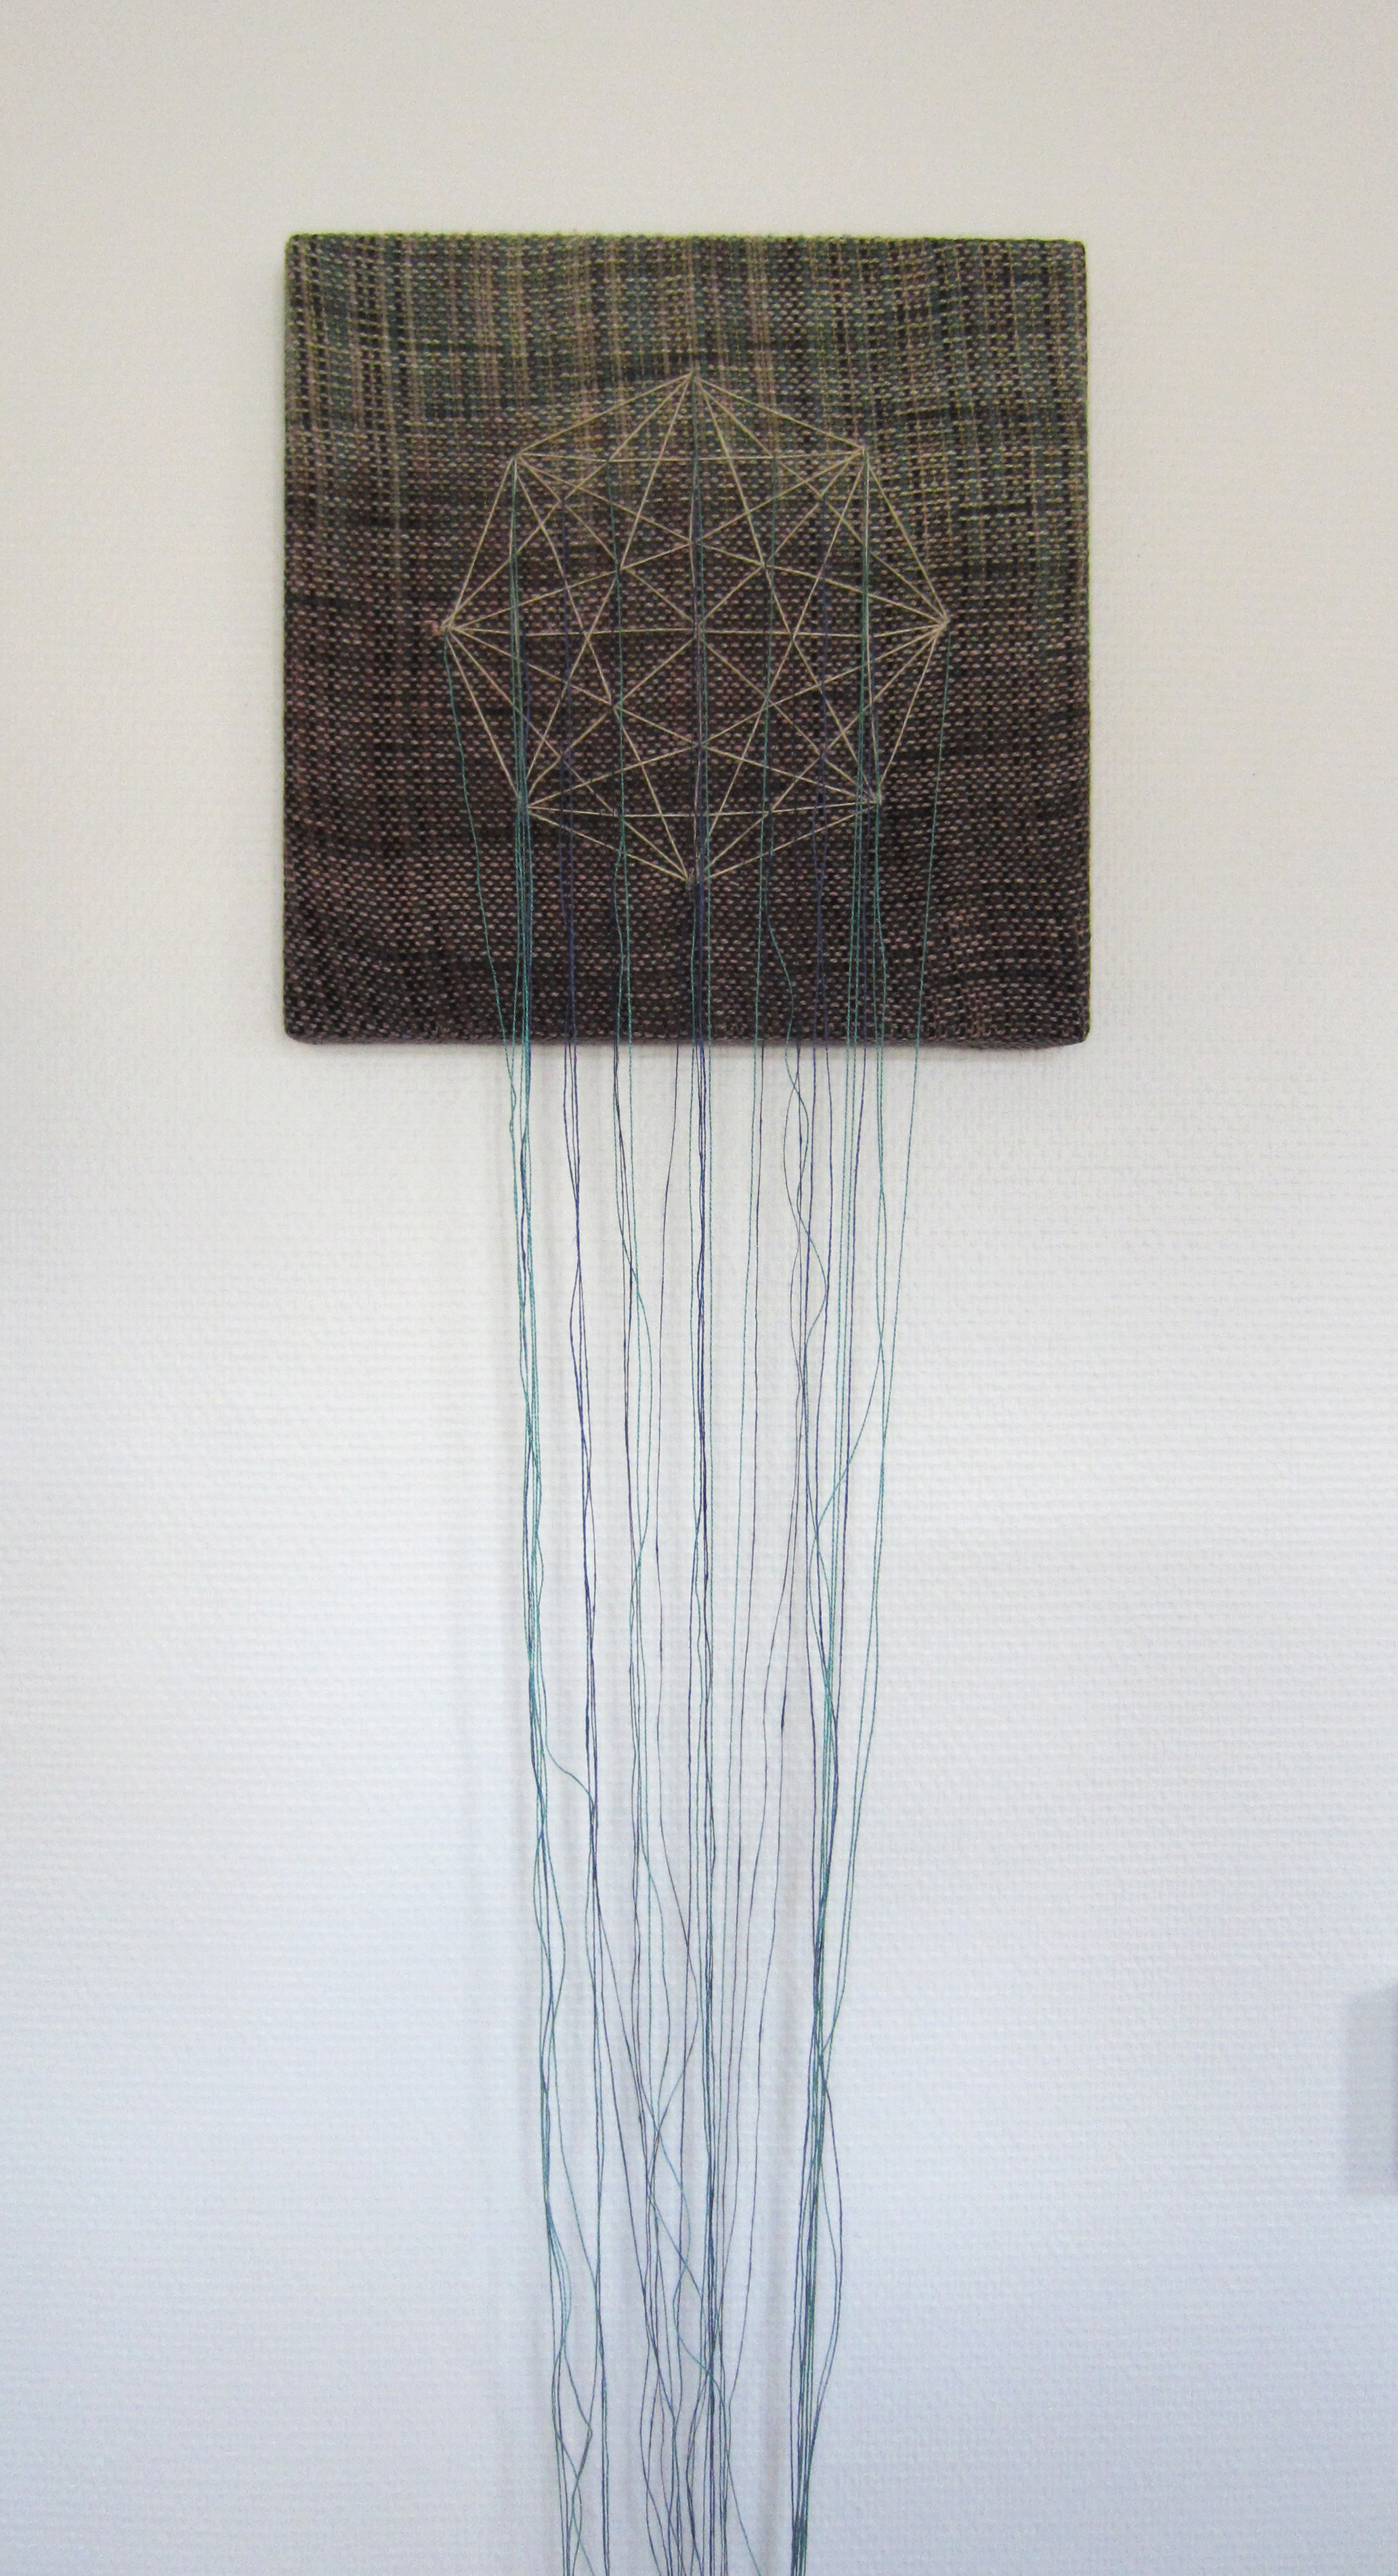 Marianna, 2016, Hand dyed, handwoven fabric with embroidery on 30cm x 30cm wood panel